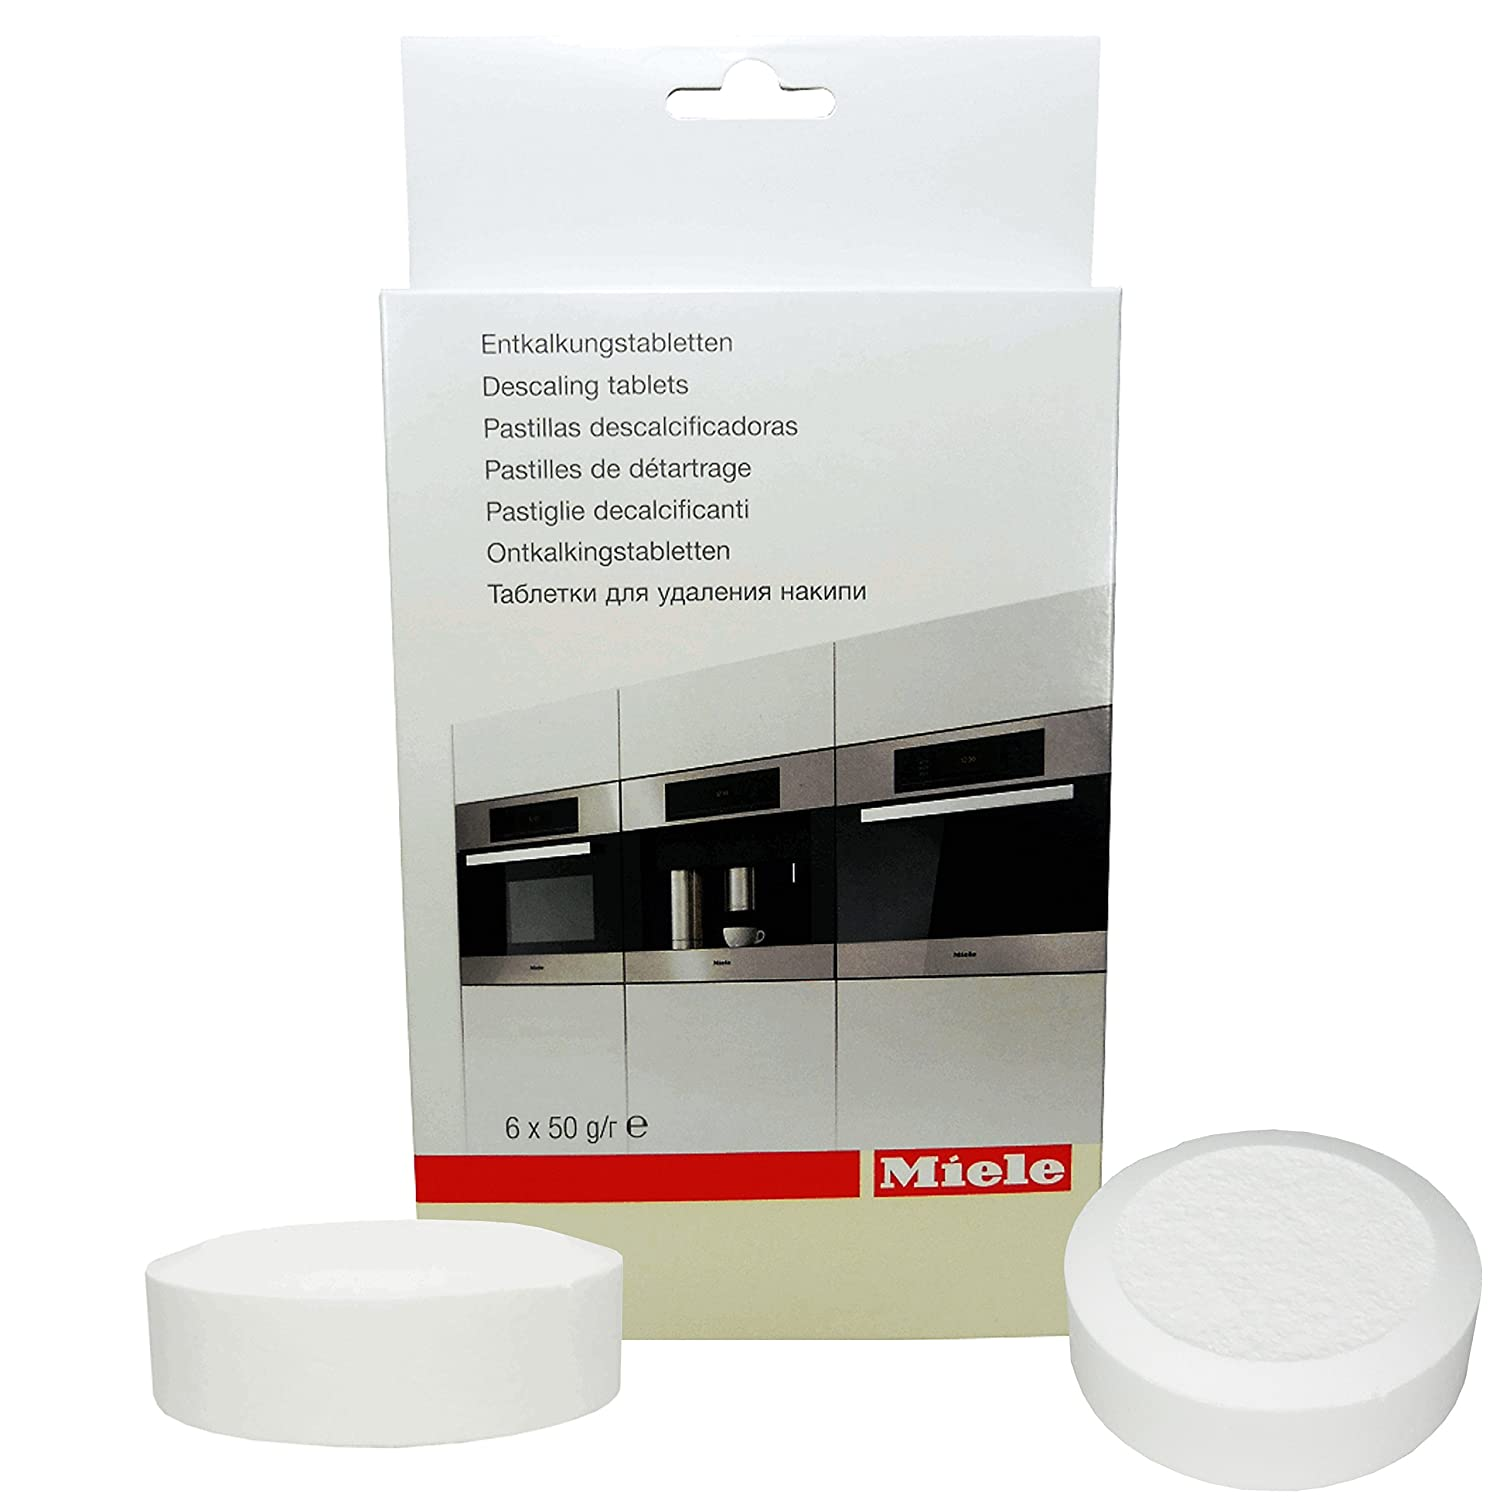 1 x original 1x6 entkalkertabletten entkalker tabs kaffeevollautomat miele 56260 ebay. Black Bedroom Furniture Sets. Home Design Ideas